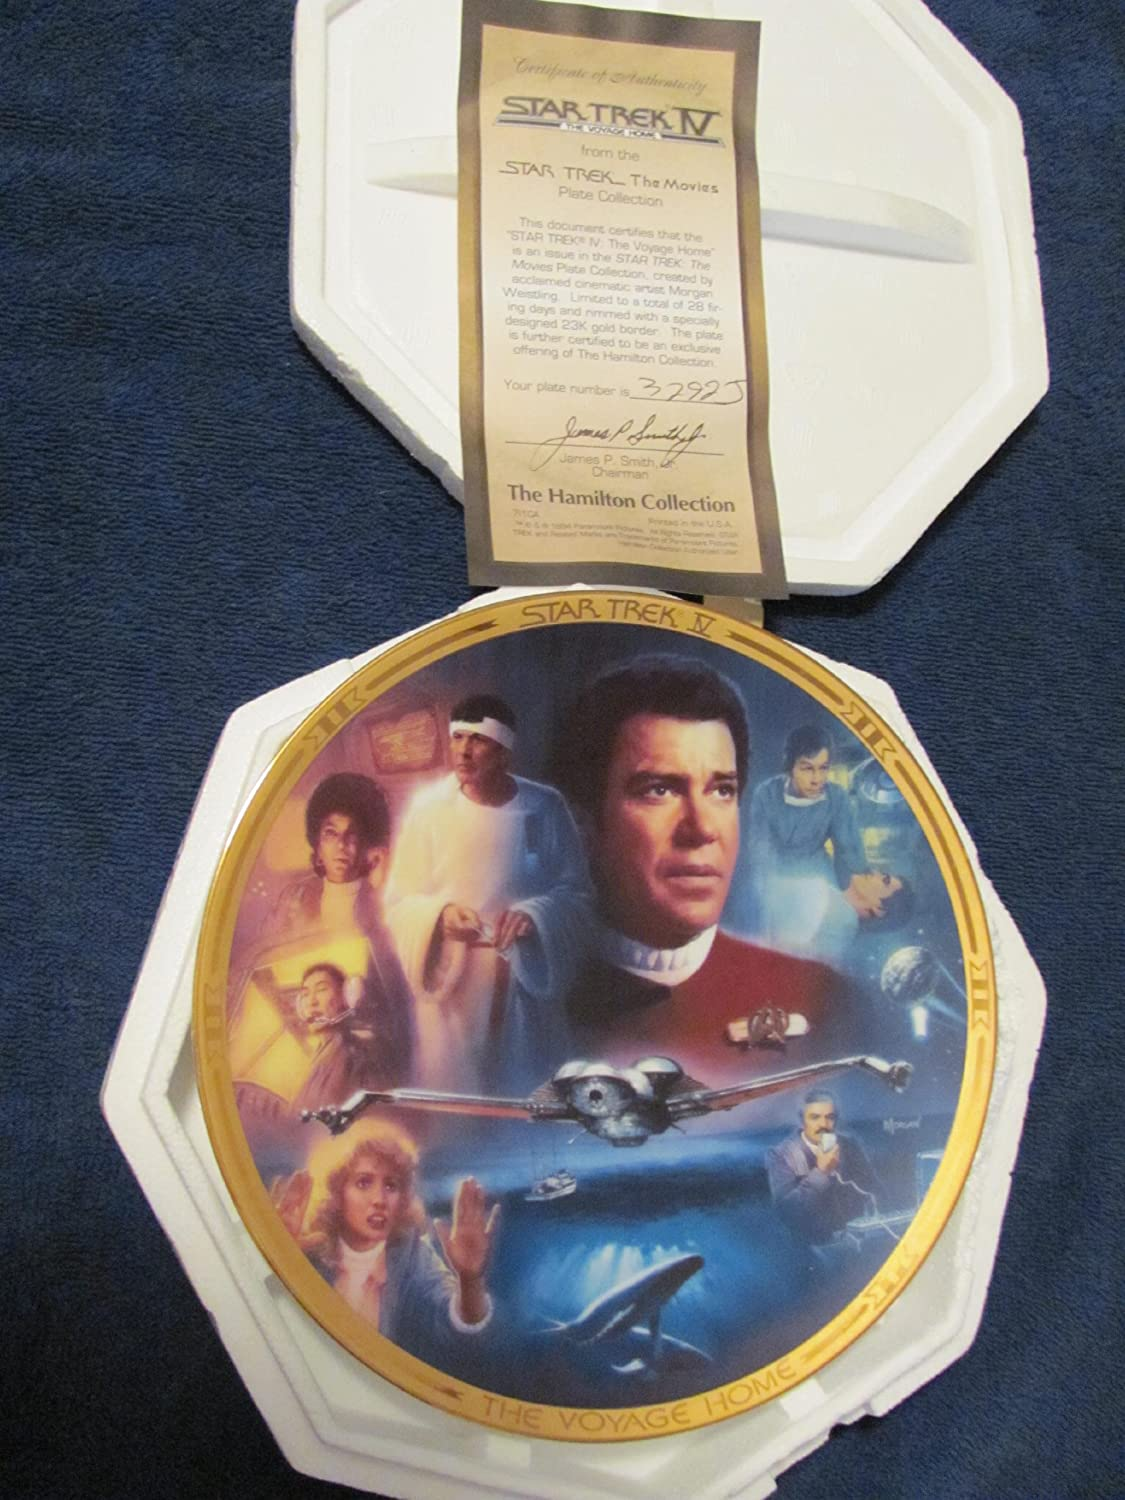 Star Trek IV The Voyage Home Collector's Plate: The Hamilton Collection 1994 Presents Star Trek Iv: The Movies Plate Collection the tyger voyage